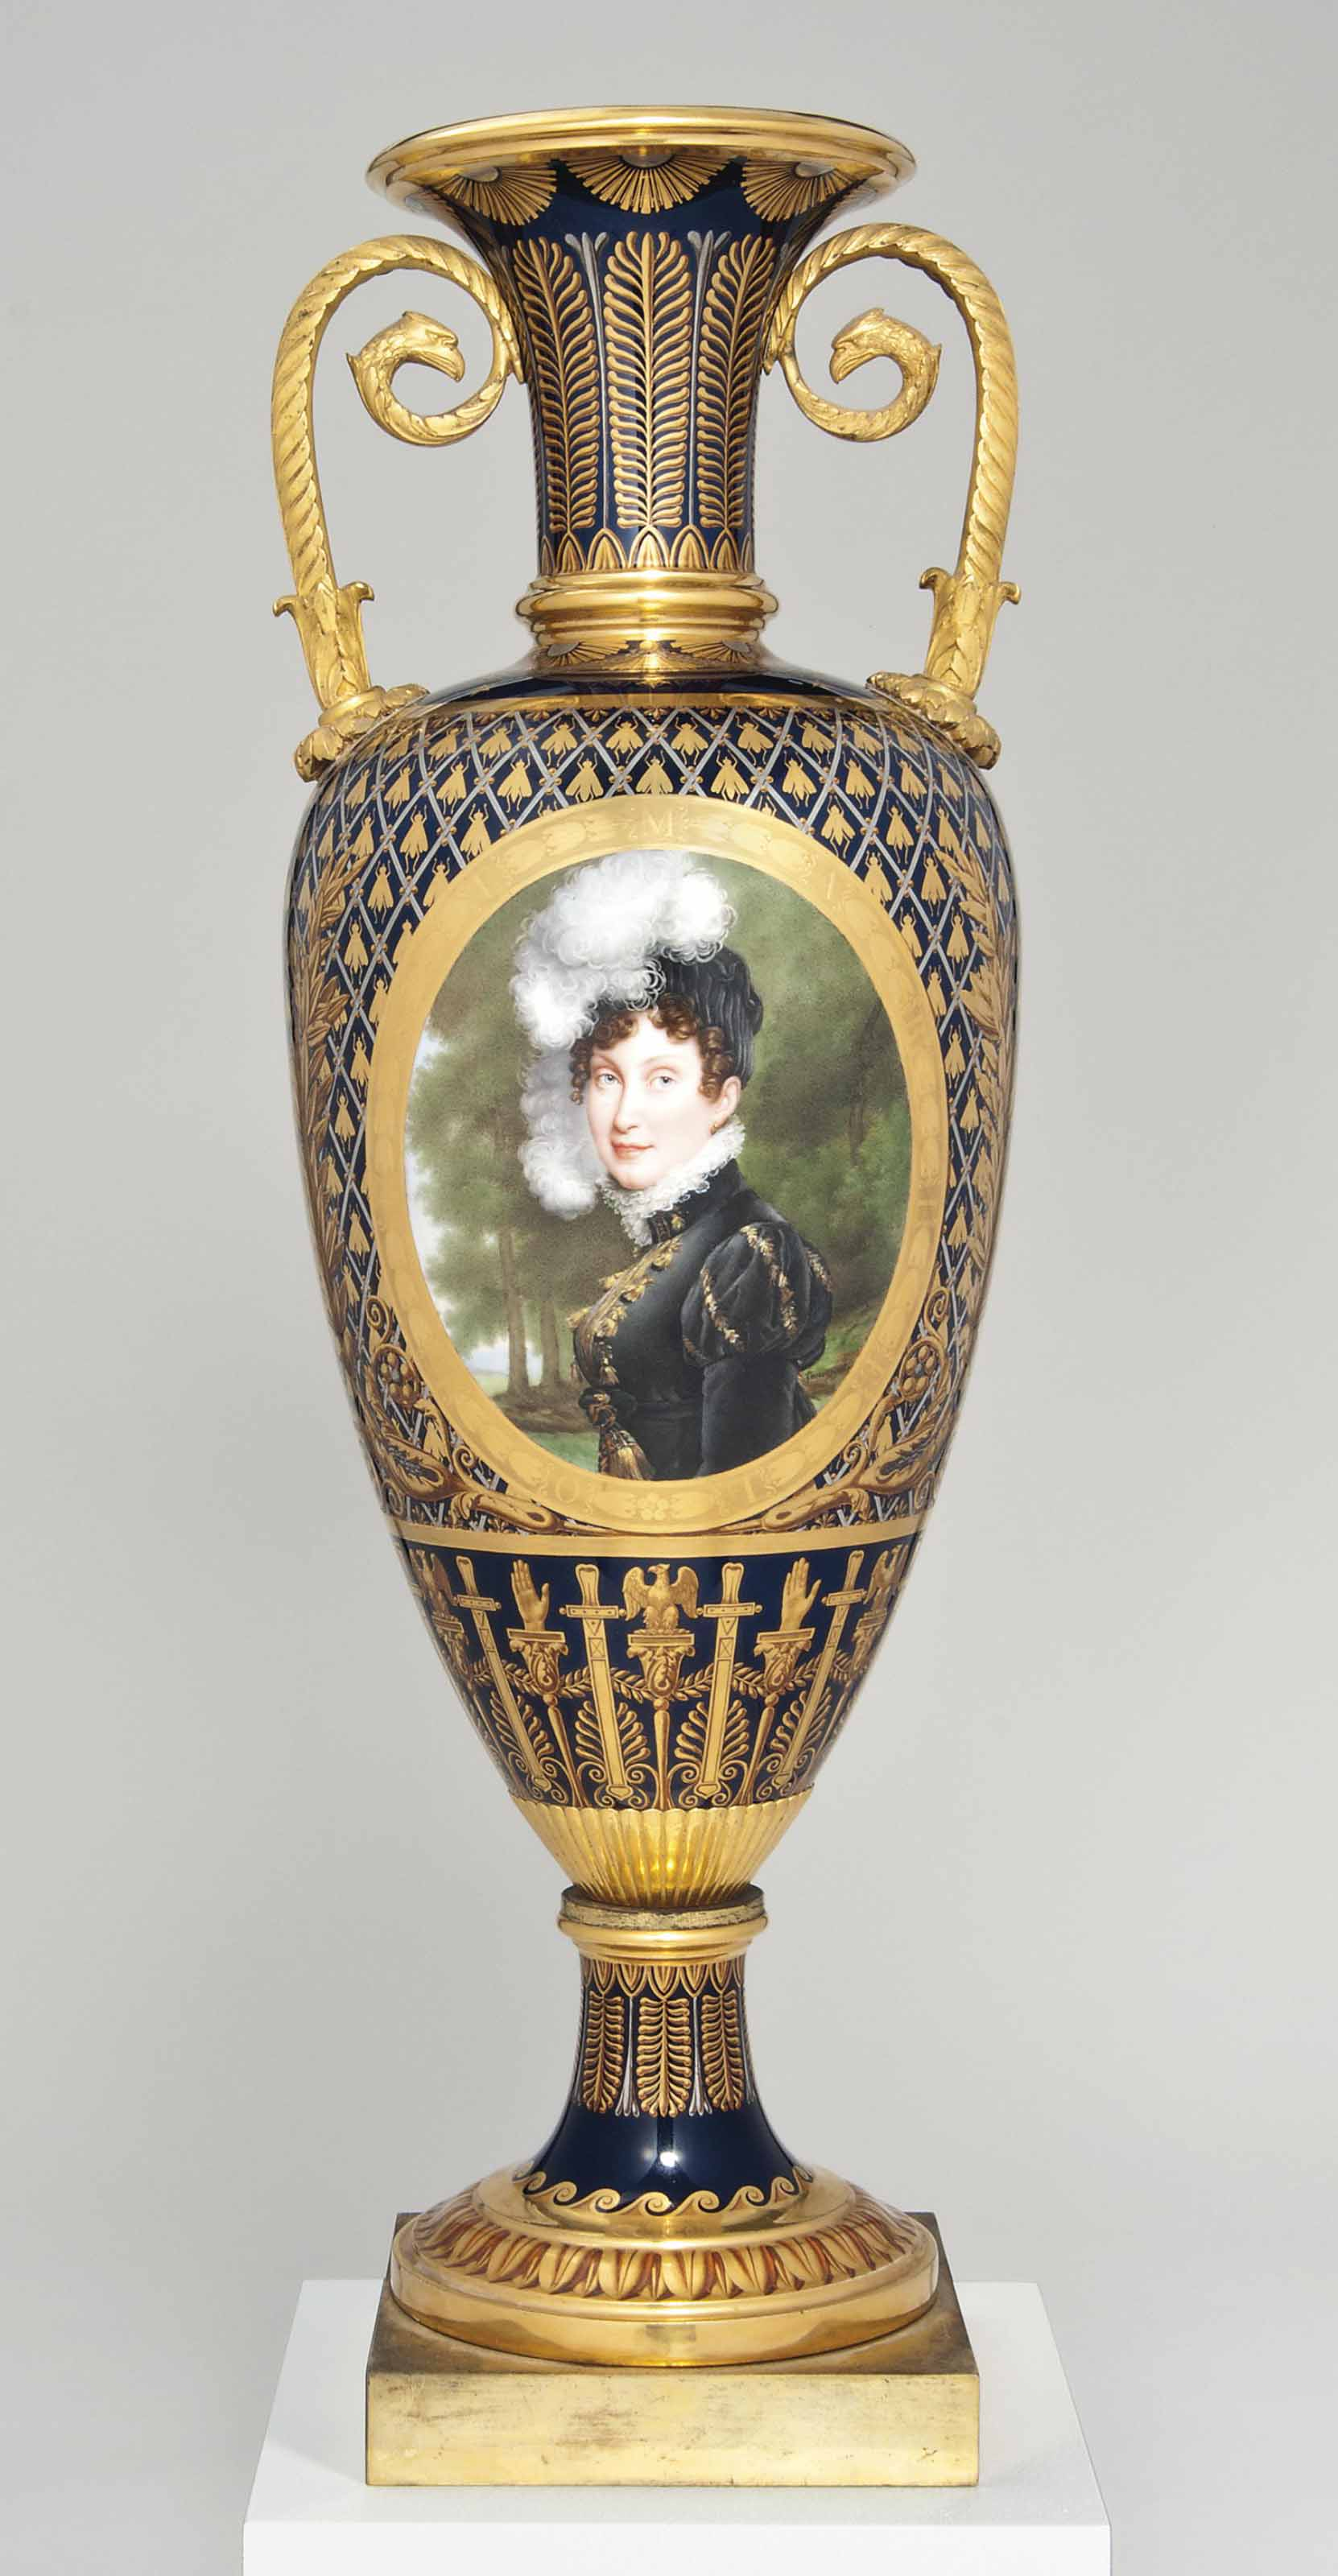 A SEVRES ORMOLU-MOUNTED BEAU BLEU-GROUND SLENDER OVIFORM TWO-HANDLED IMPERIAL PORTRAIT VASE (VASE 'FUSEAU', 2EME GRANDEUR)